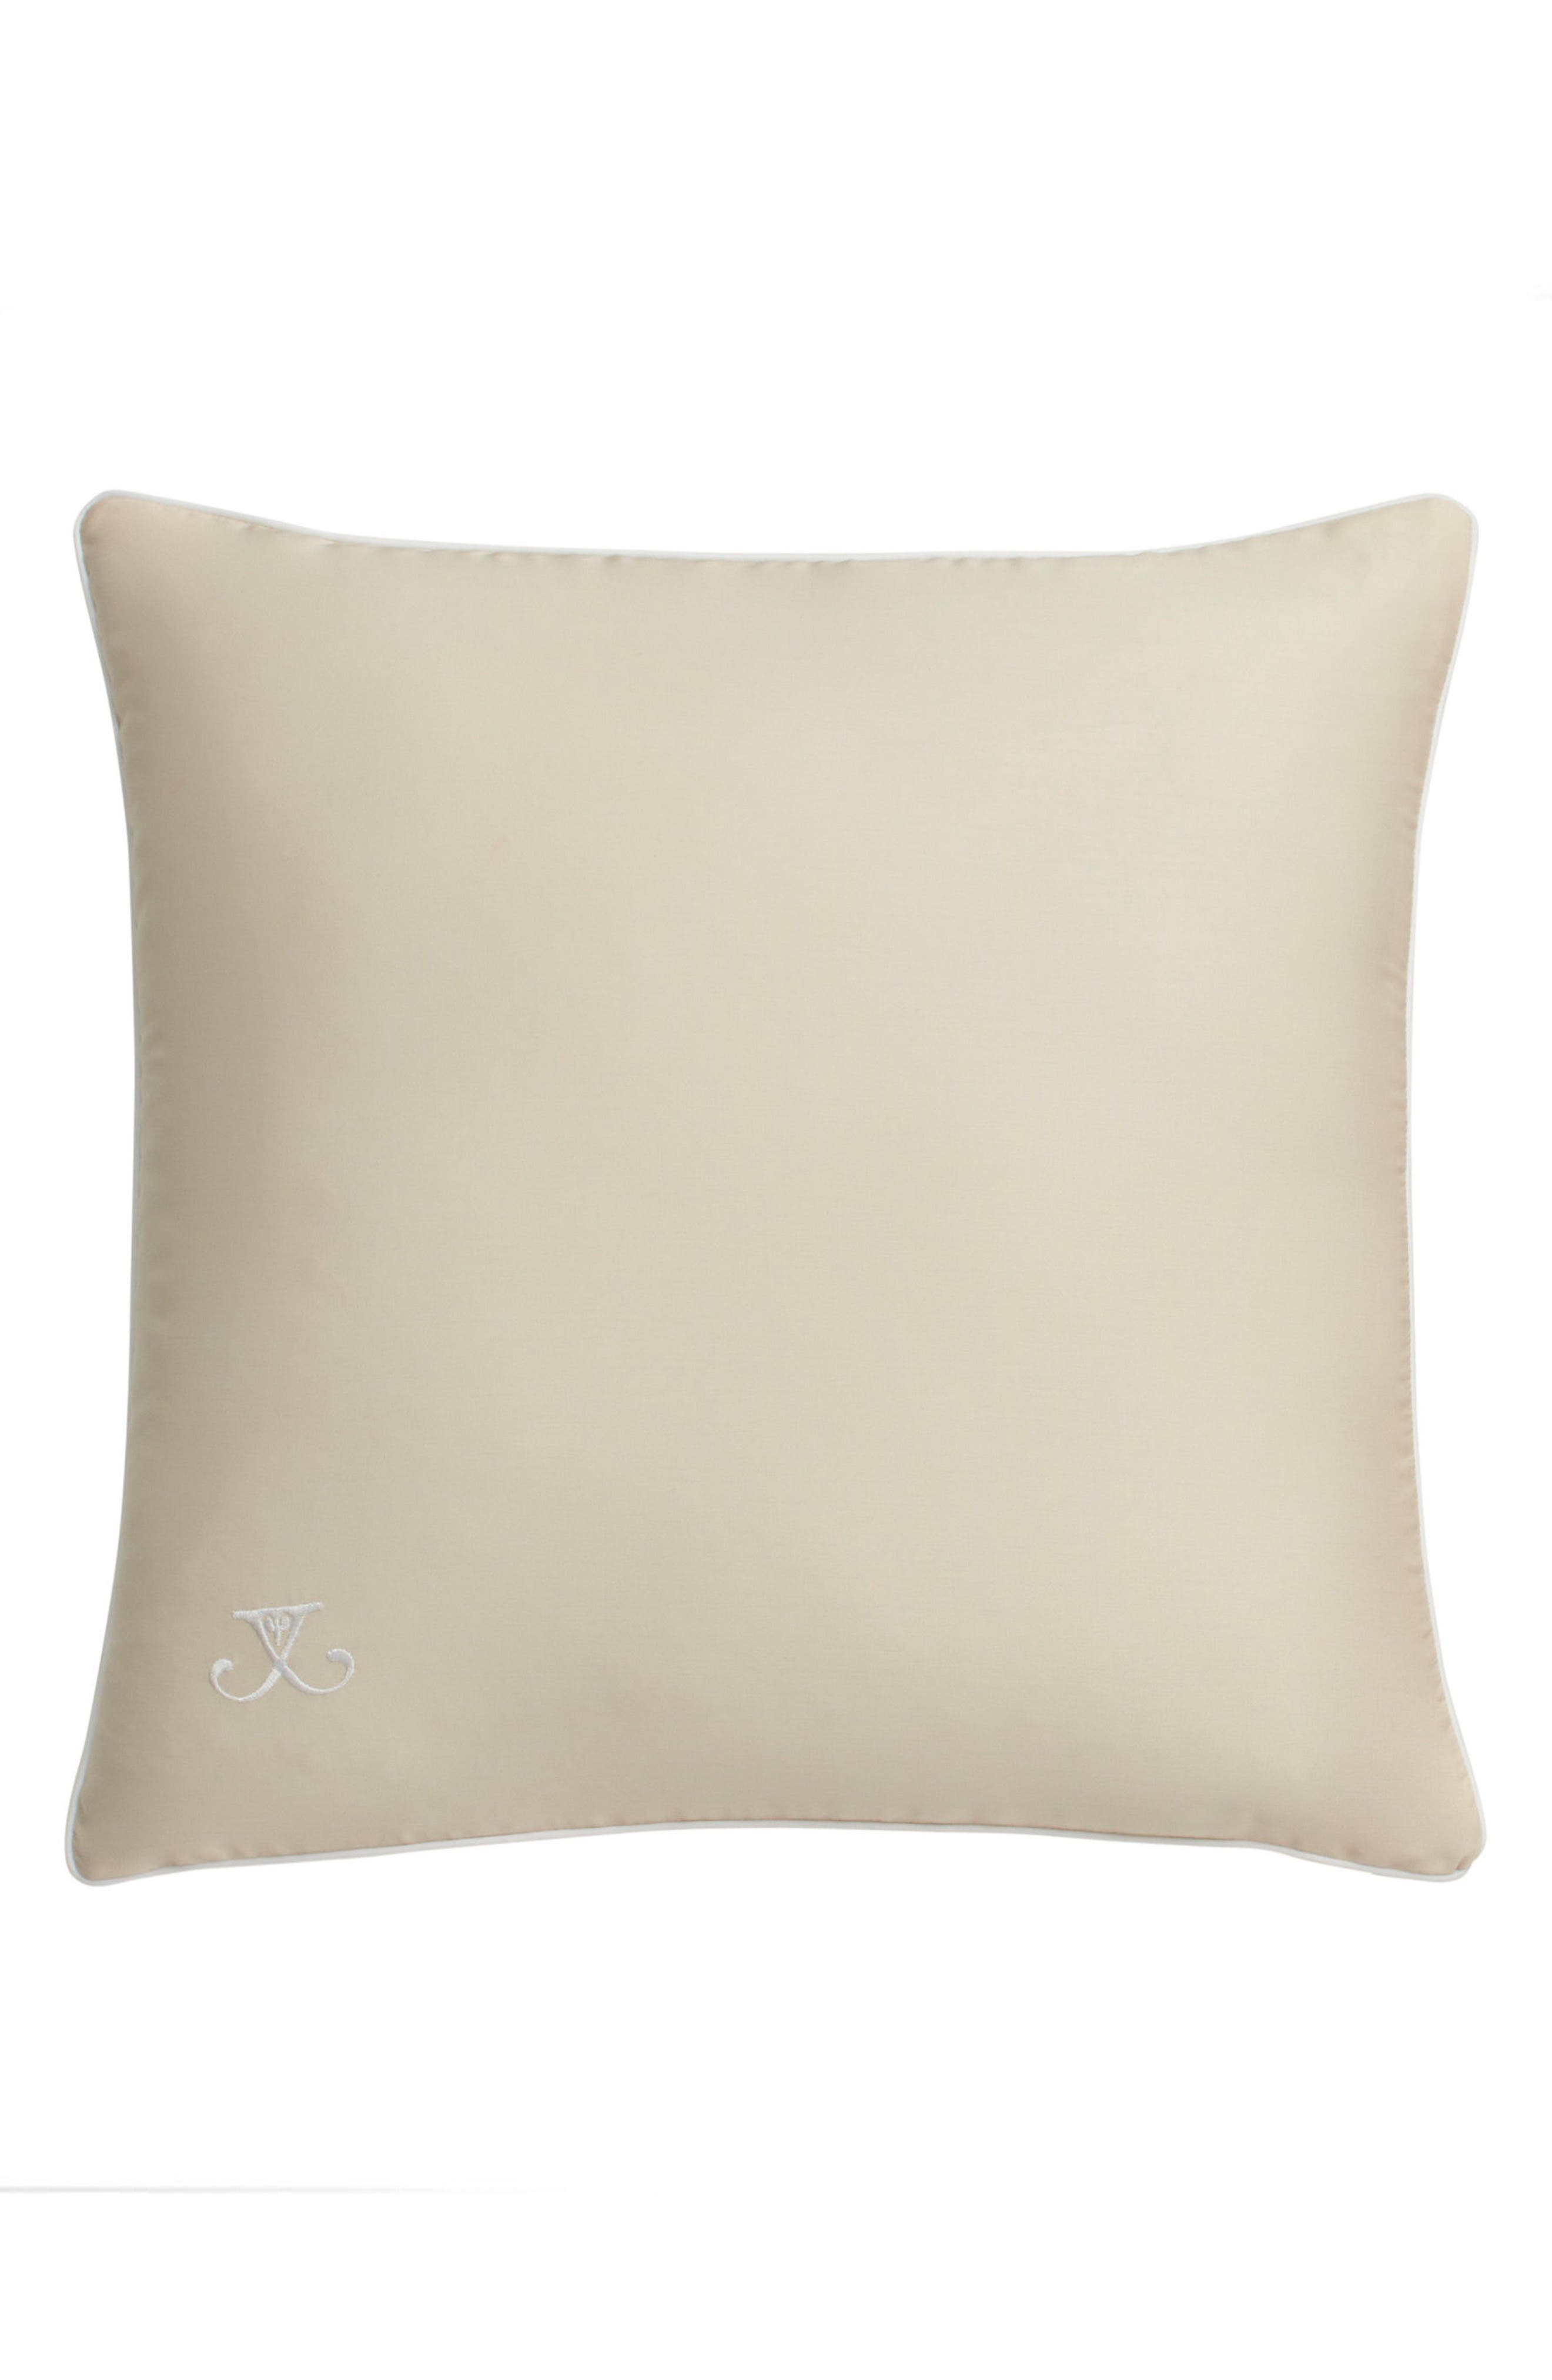 Main Image - Jill Rosenwald Blackpoint Hex Accent Pillow